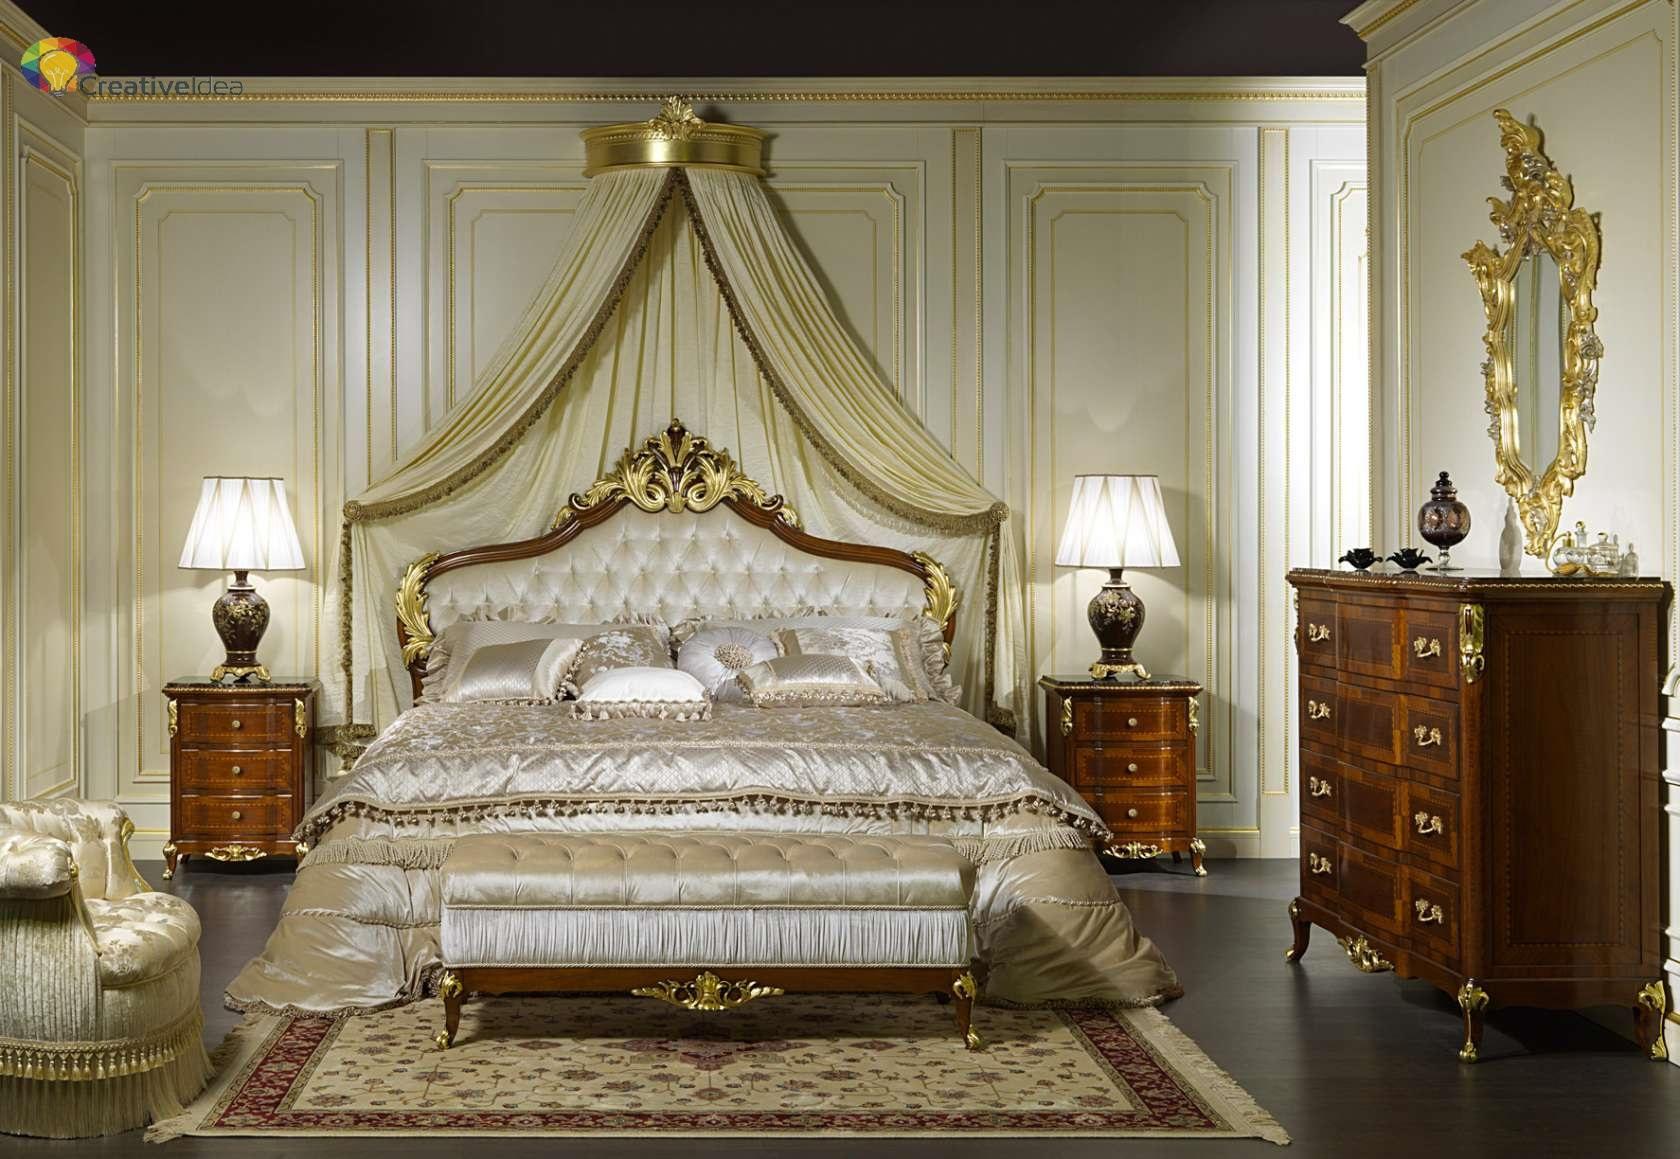 Classic room decor Louis XV France